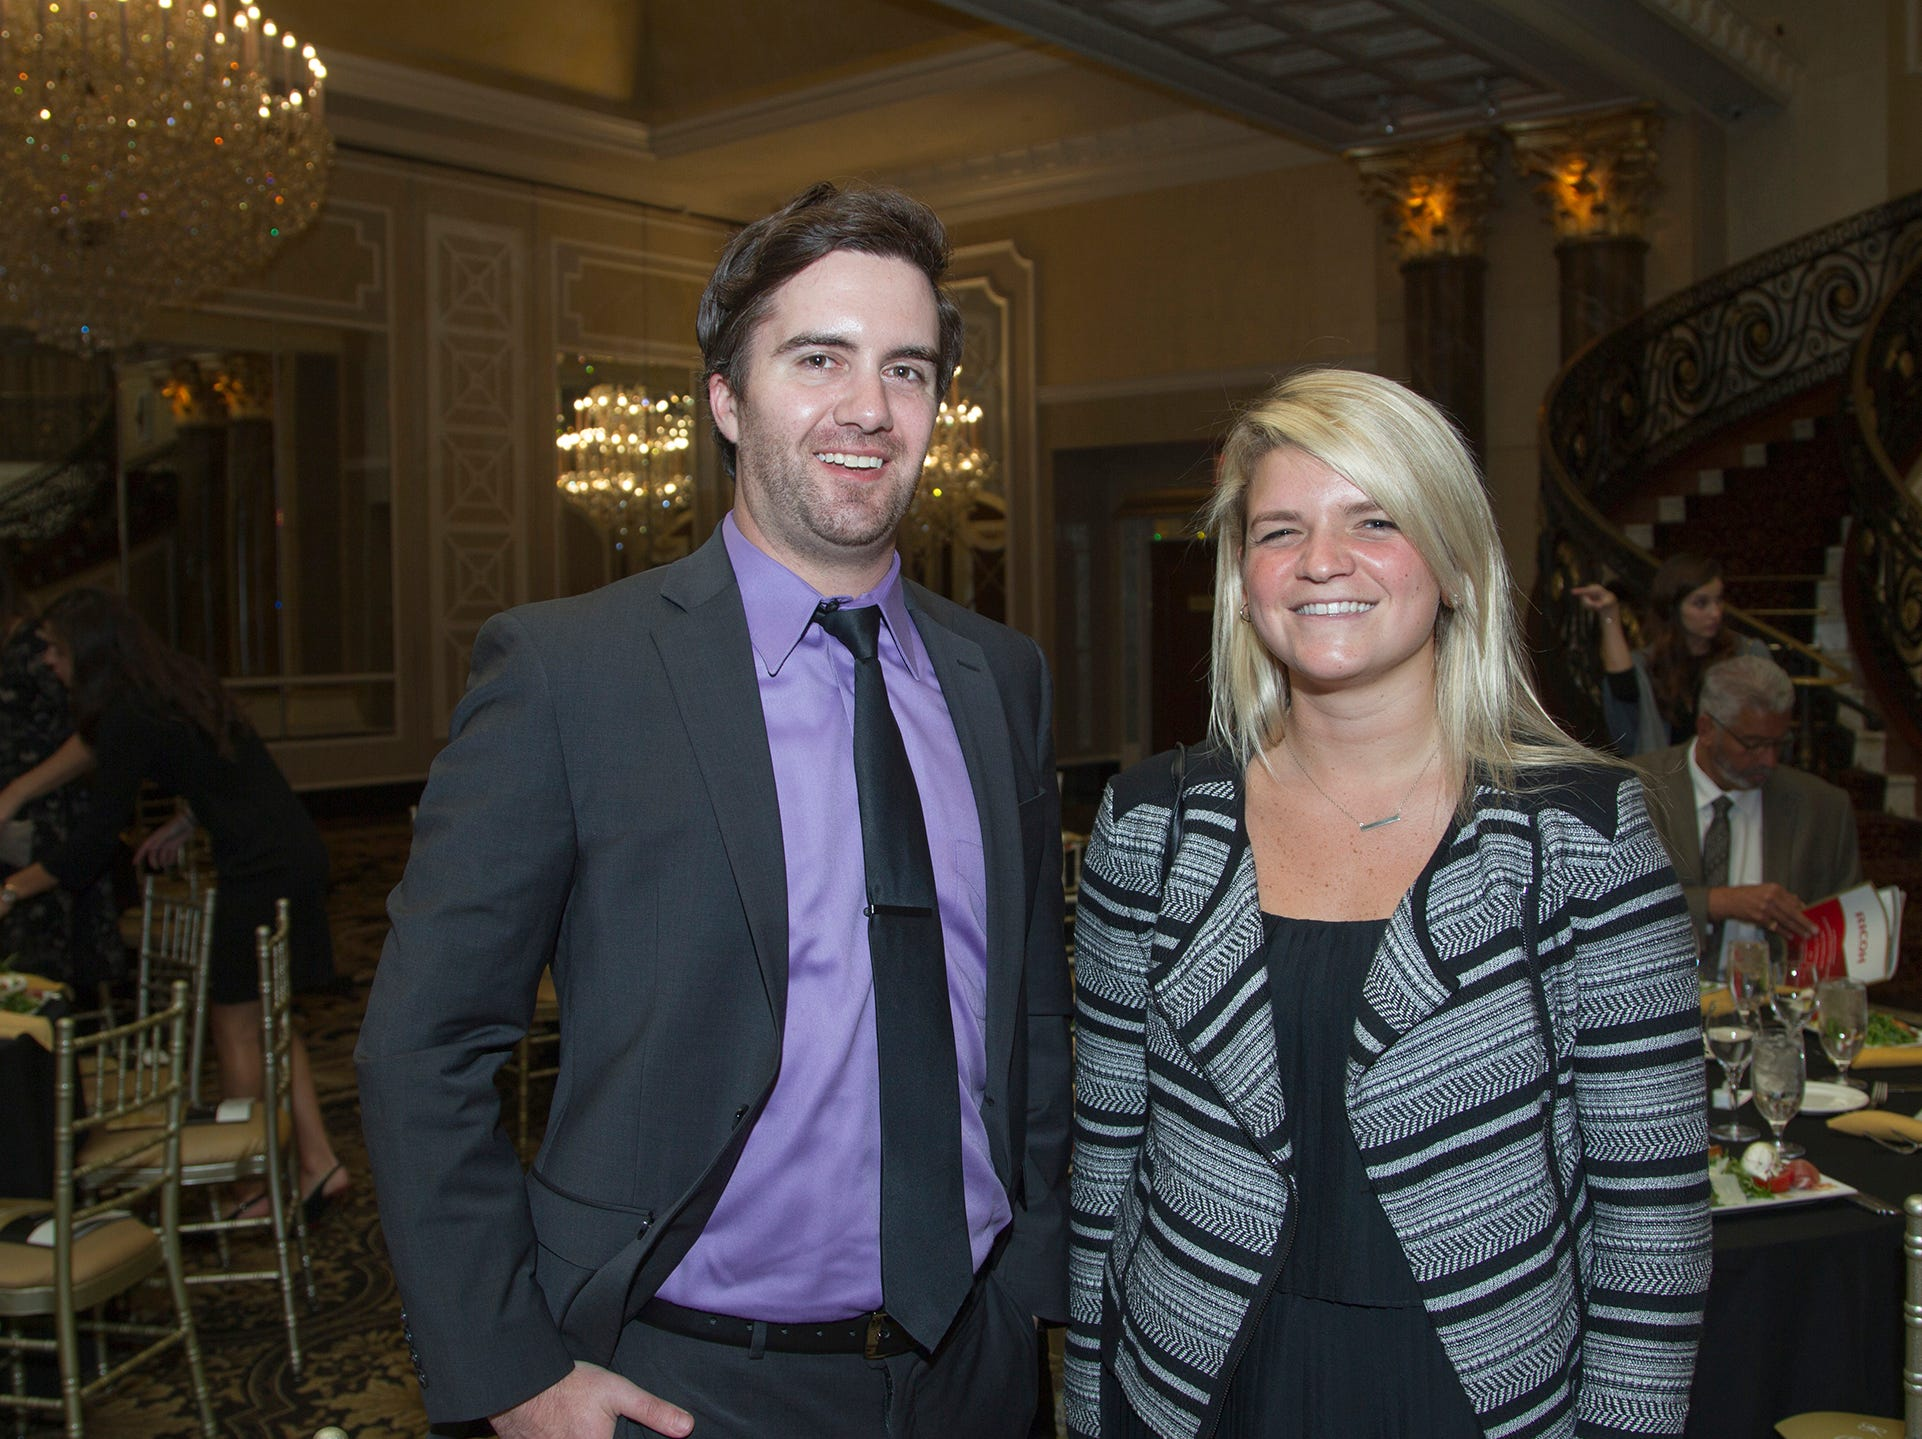 Matt Fink, Leah Routenian. Christian Health Care Center held its ' A Celebration of Excellence' gala at the Venetian in Garfield.  10/17/2018